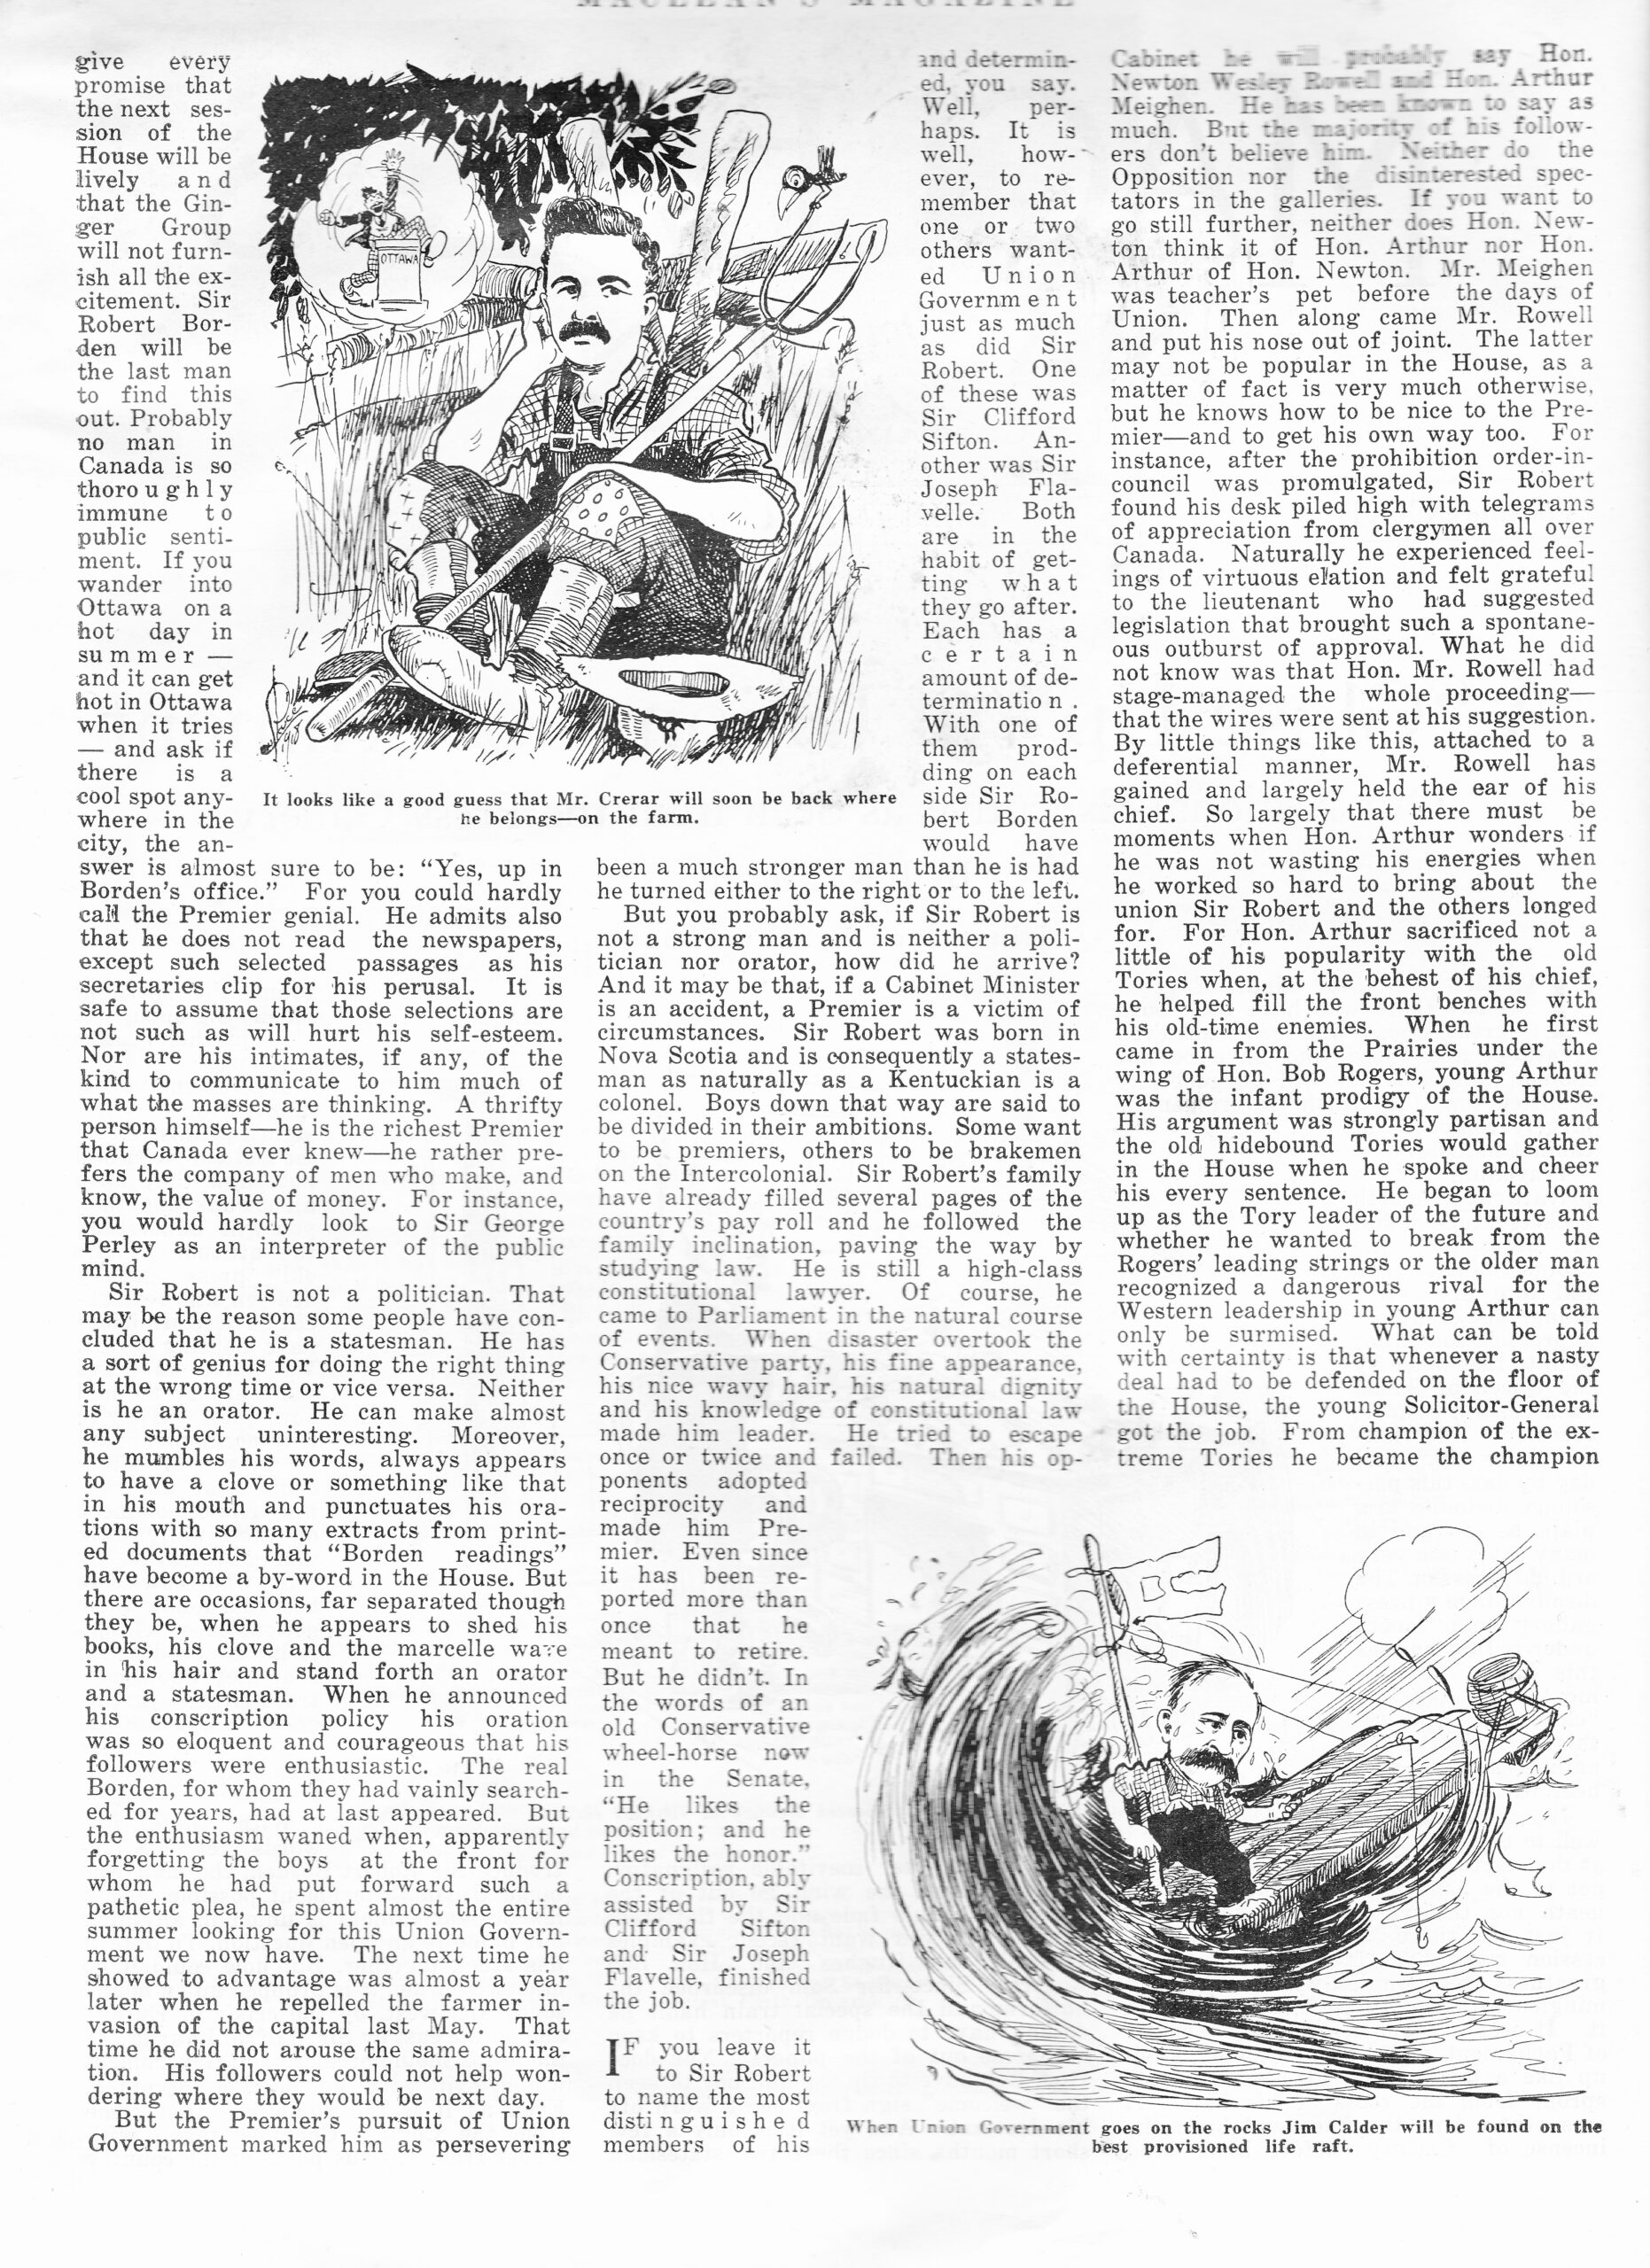 C:\Users\Robert\Documents\CANADIAN CARTOONING ILLUSTRATION and ANIMATION\IMAGE BY CARTOONIST OR ILLUS. S\SKUCE LOU Maclean's Sept 1918, 16.jpg